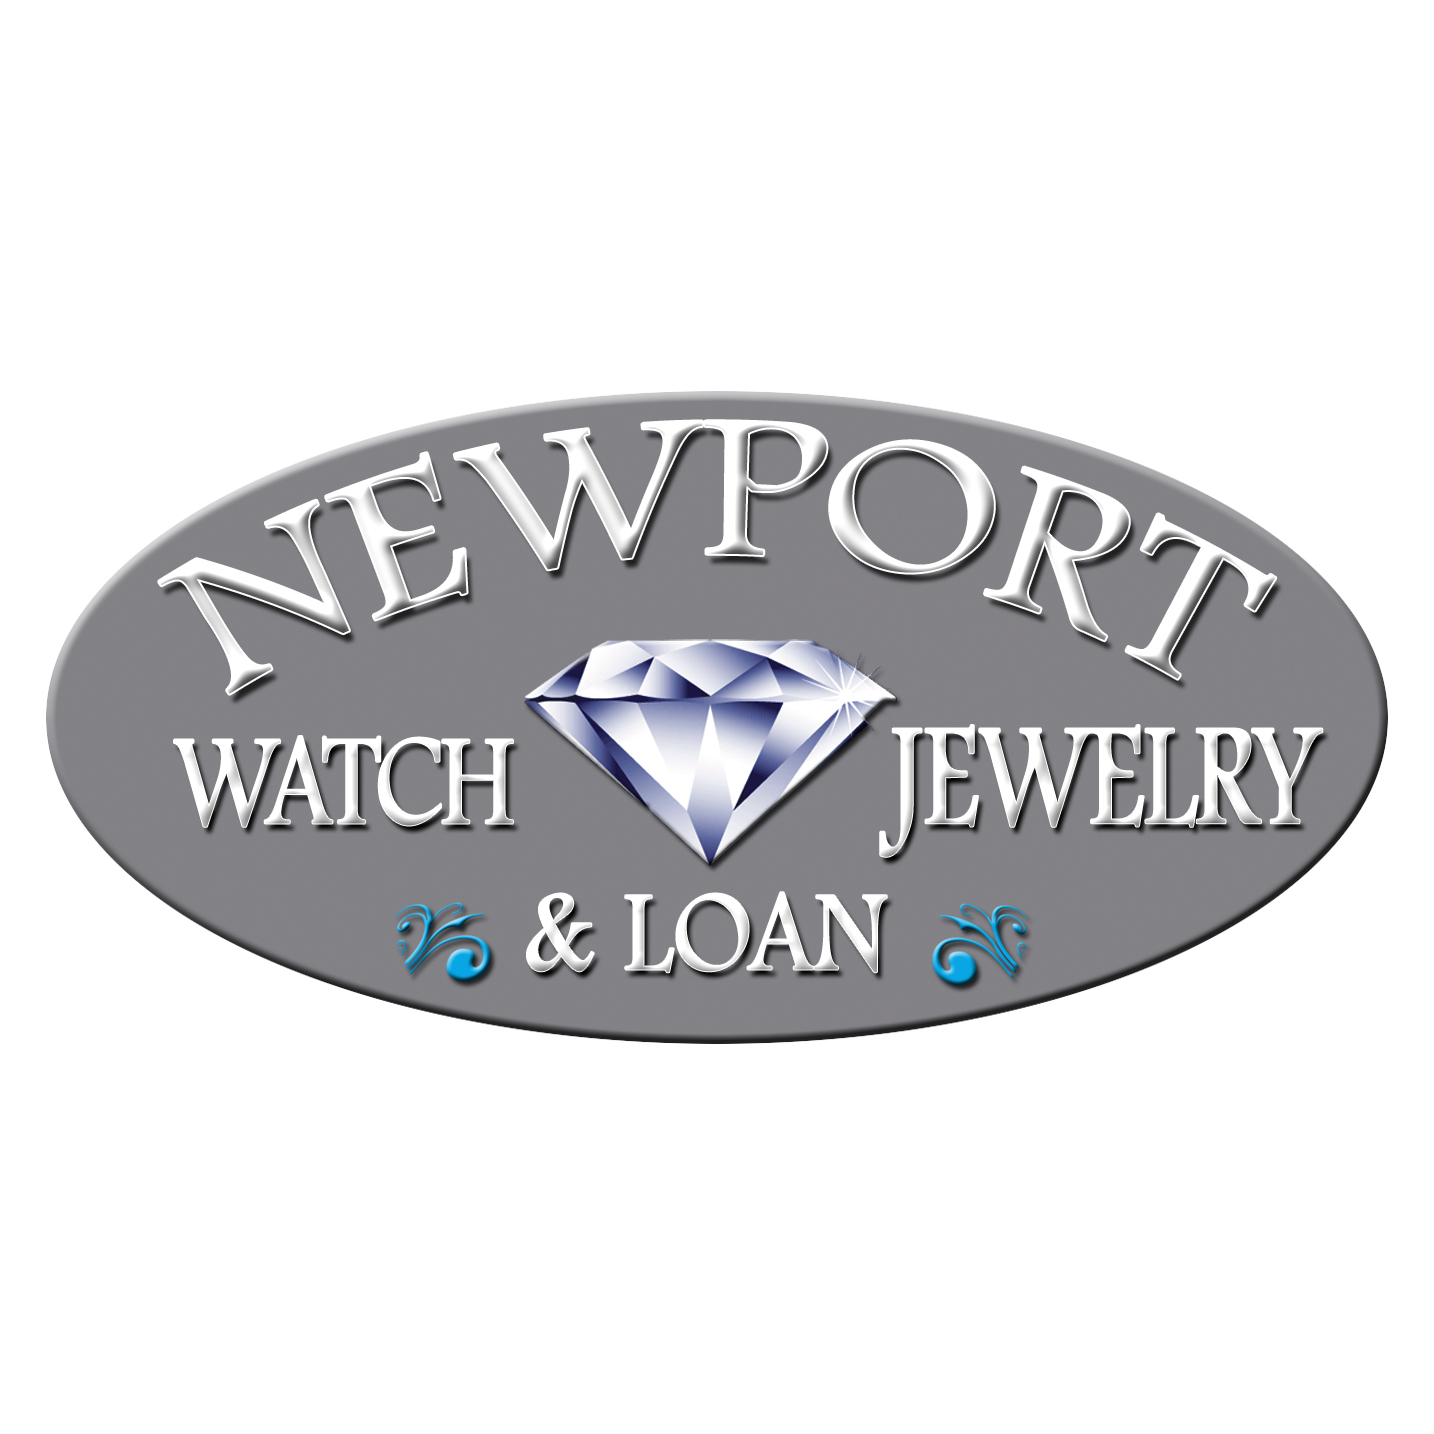 newport watch jewelry loan coupons near me in costa mesa